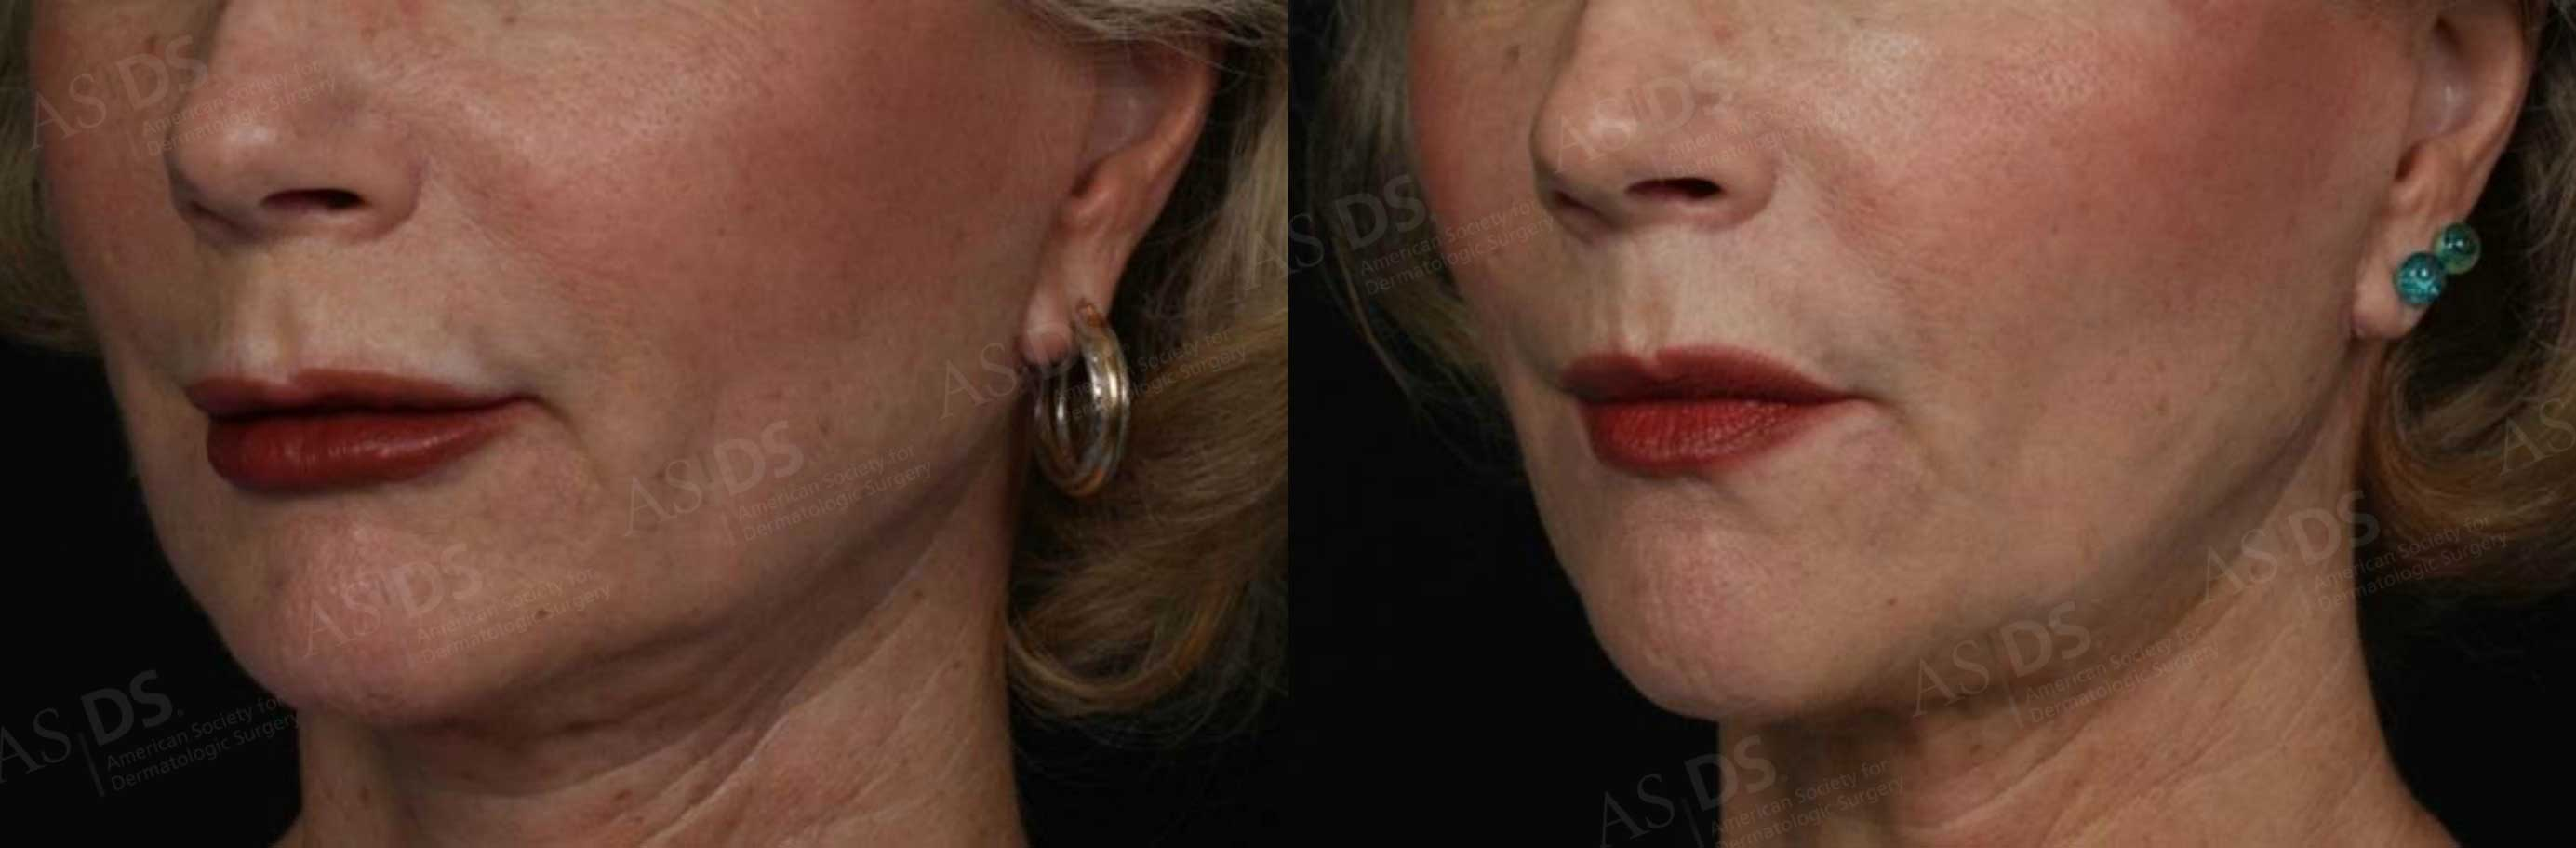 Before (left) and after (right) - Restylane to upper and lower lip.